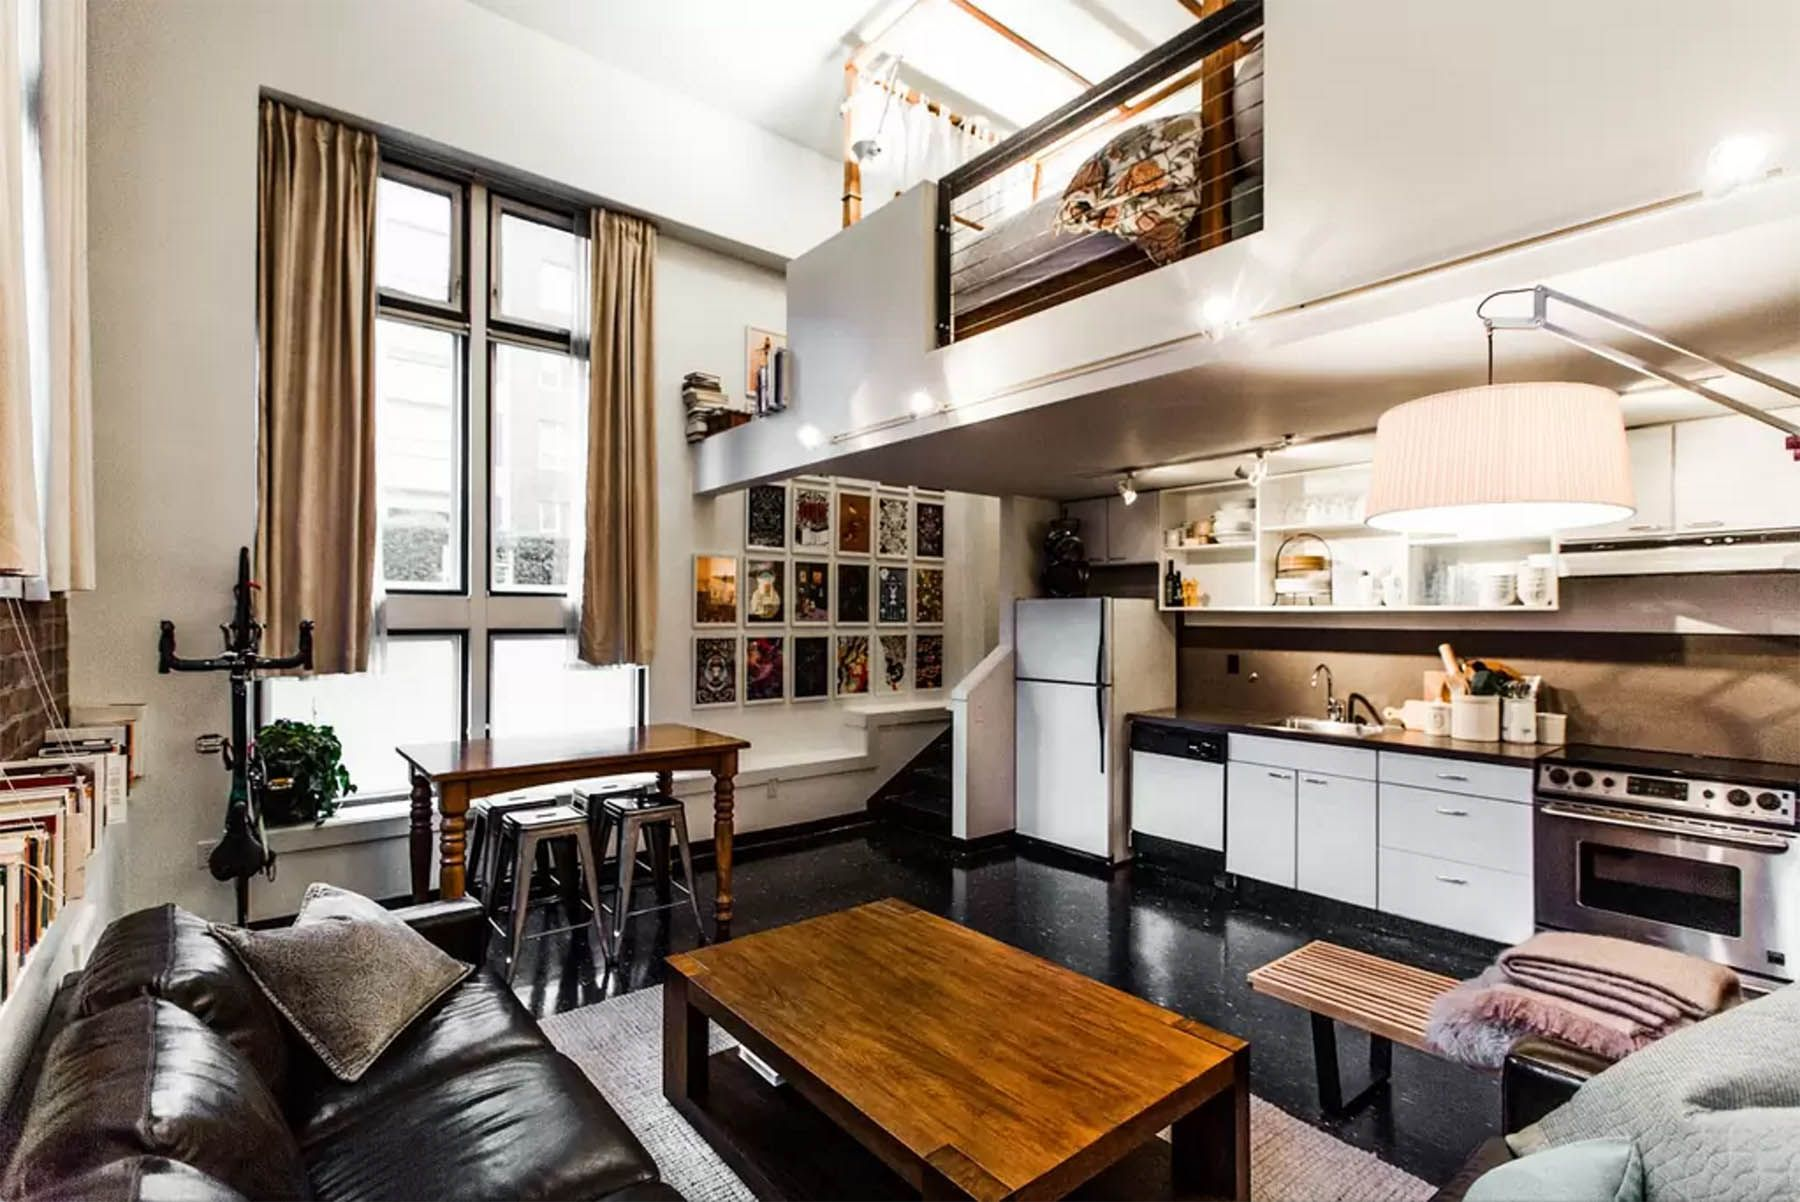 A Tour of Our Seattle Airbnb